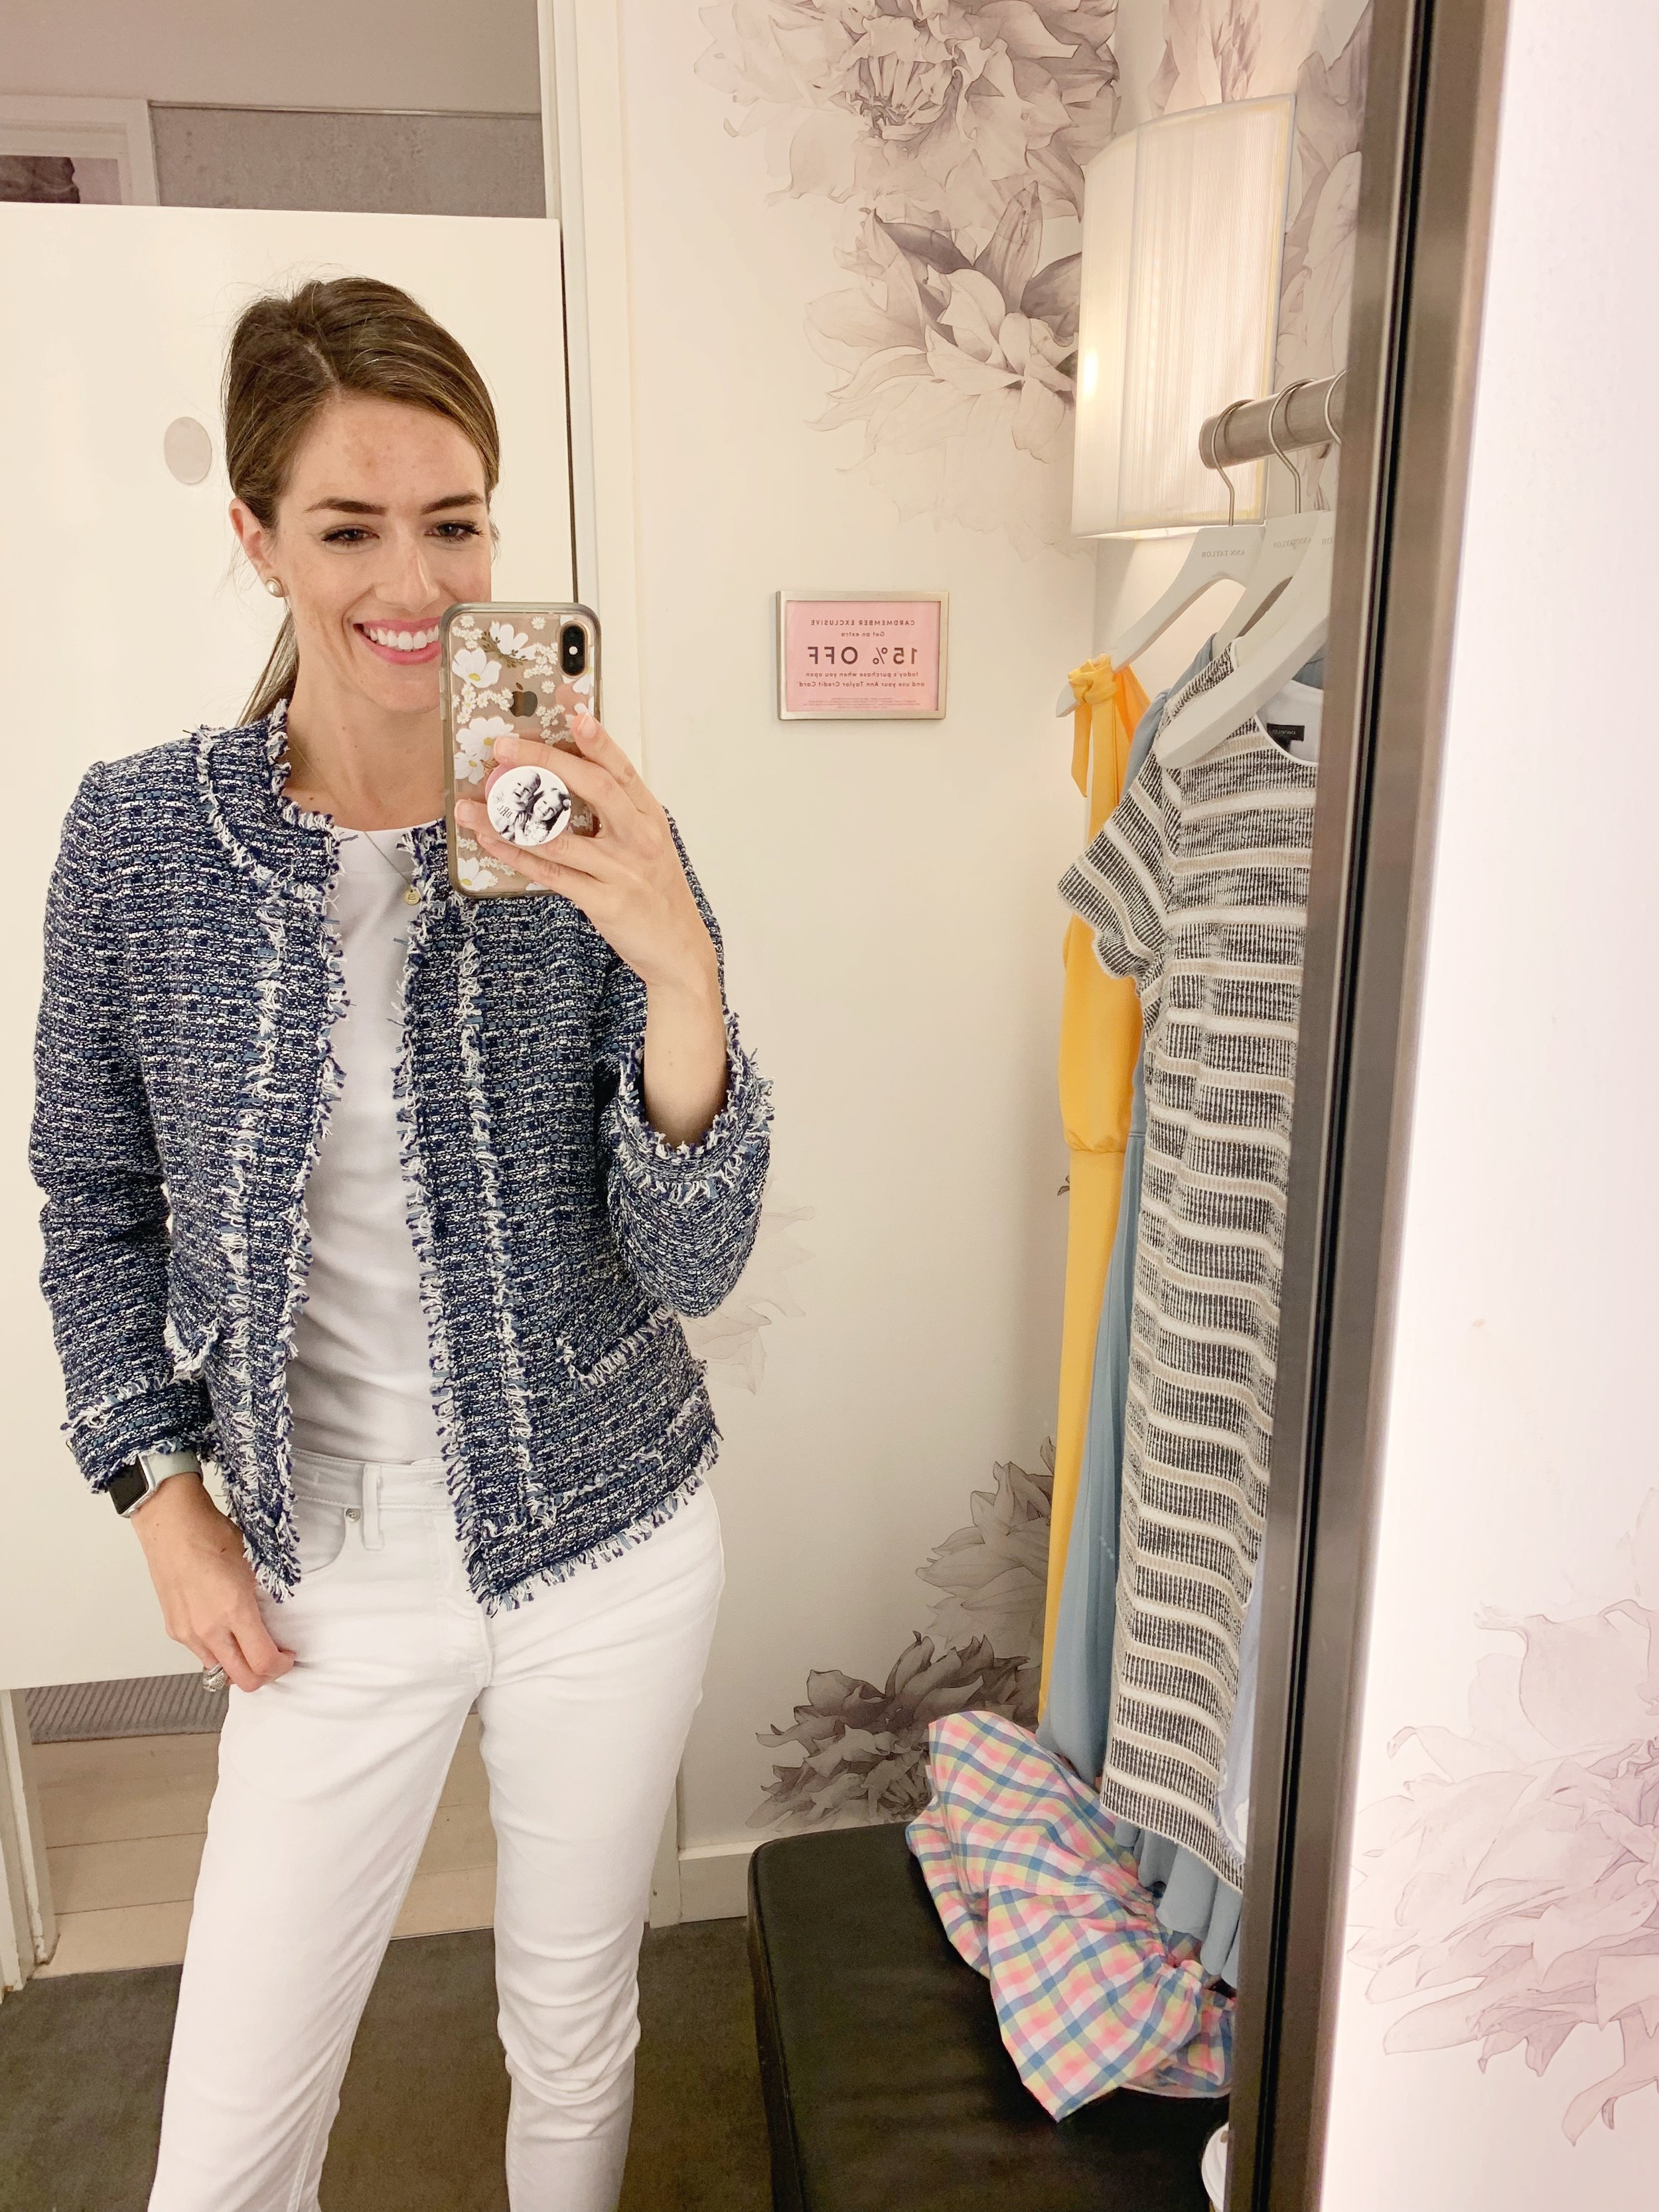 This jacket is timeless and I loved the blue/white combo. It would look great paired with dark wash denim and loafers or you could get the matching skirt for a more formal look. The shirt I'm wearing underneath is the boatneck luxe tee and is the ultimate white tee to use for layering with pieces like this jacket. Select colors are on sale but white is not. The jacket is priced at $149 and the tee is $39.